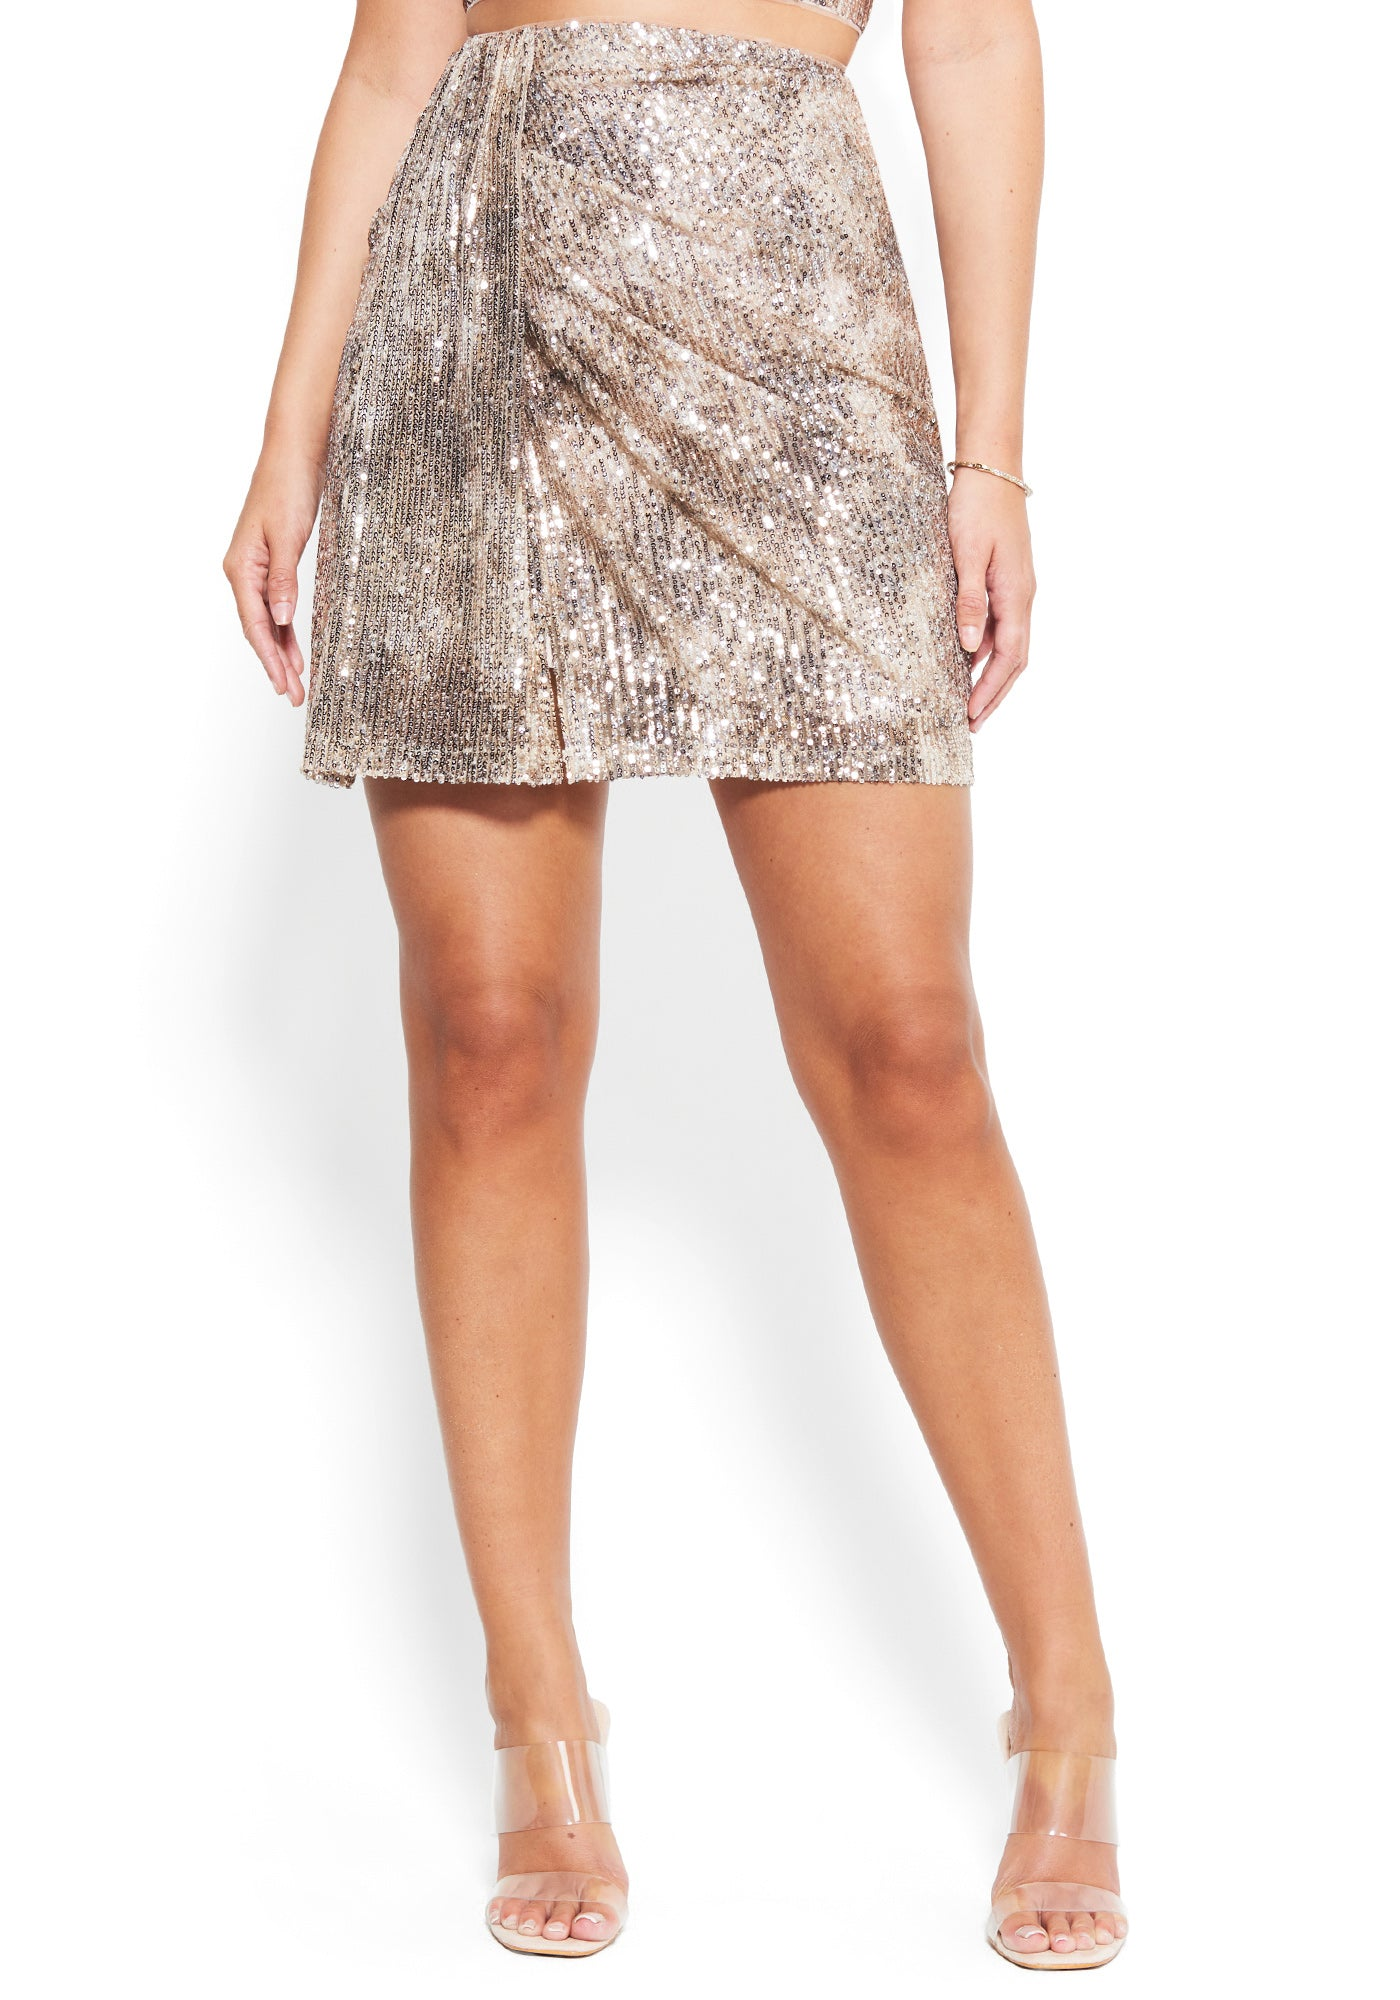 Bebe Women's Mixed Sequin Mini Skirt, Size XXS in GOLD Metal/Spandex